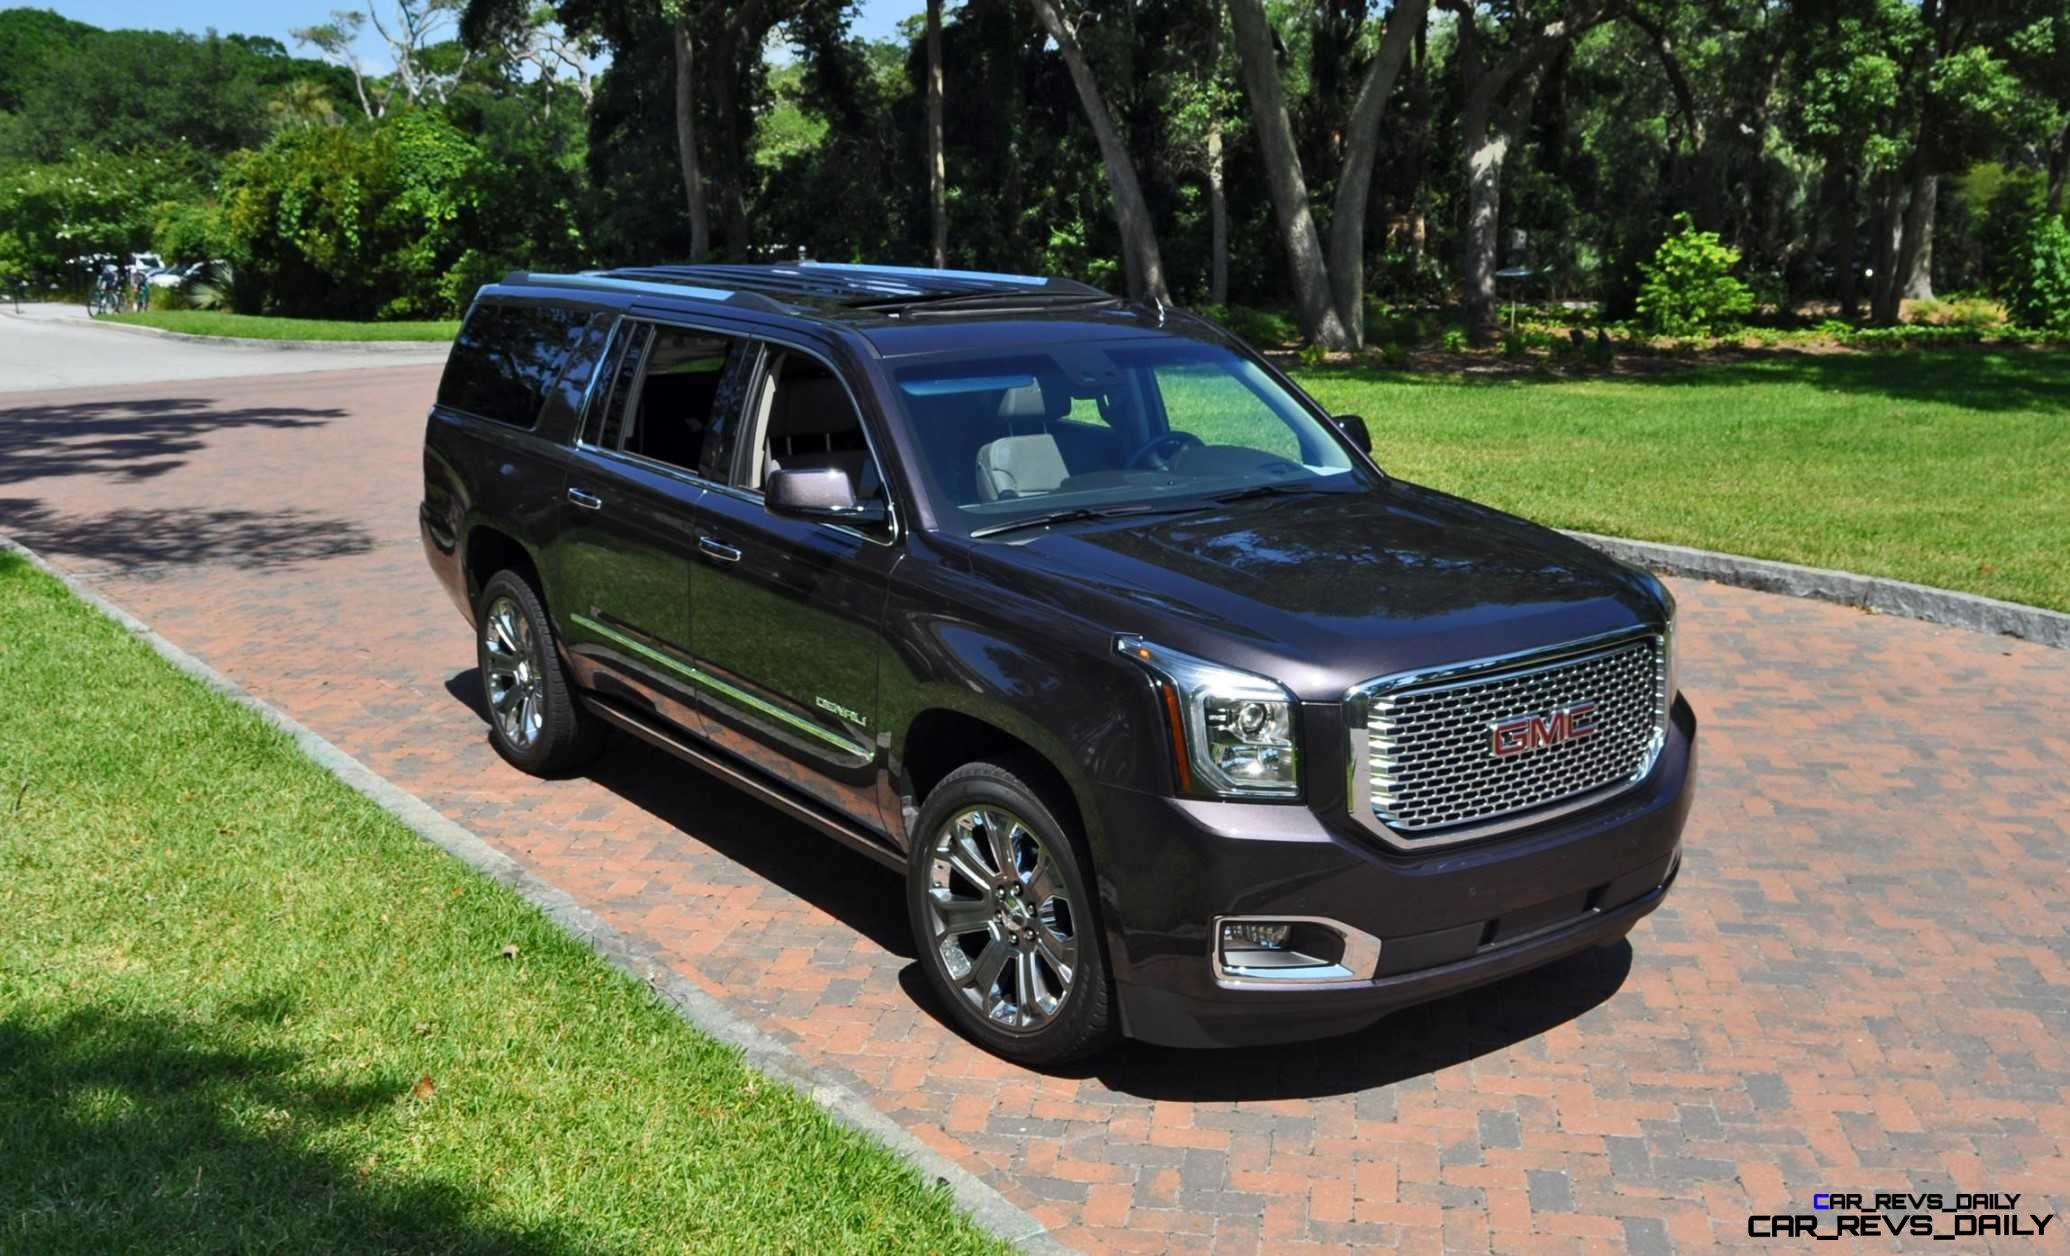 2015 Gmc Yukon Denali Xl Review